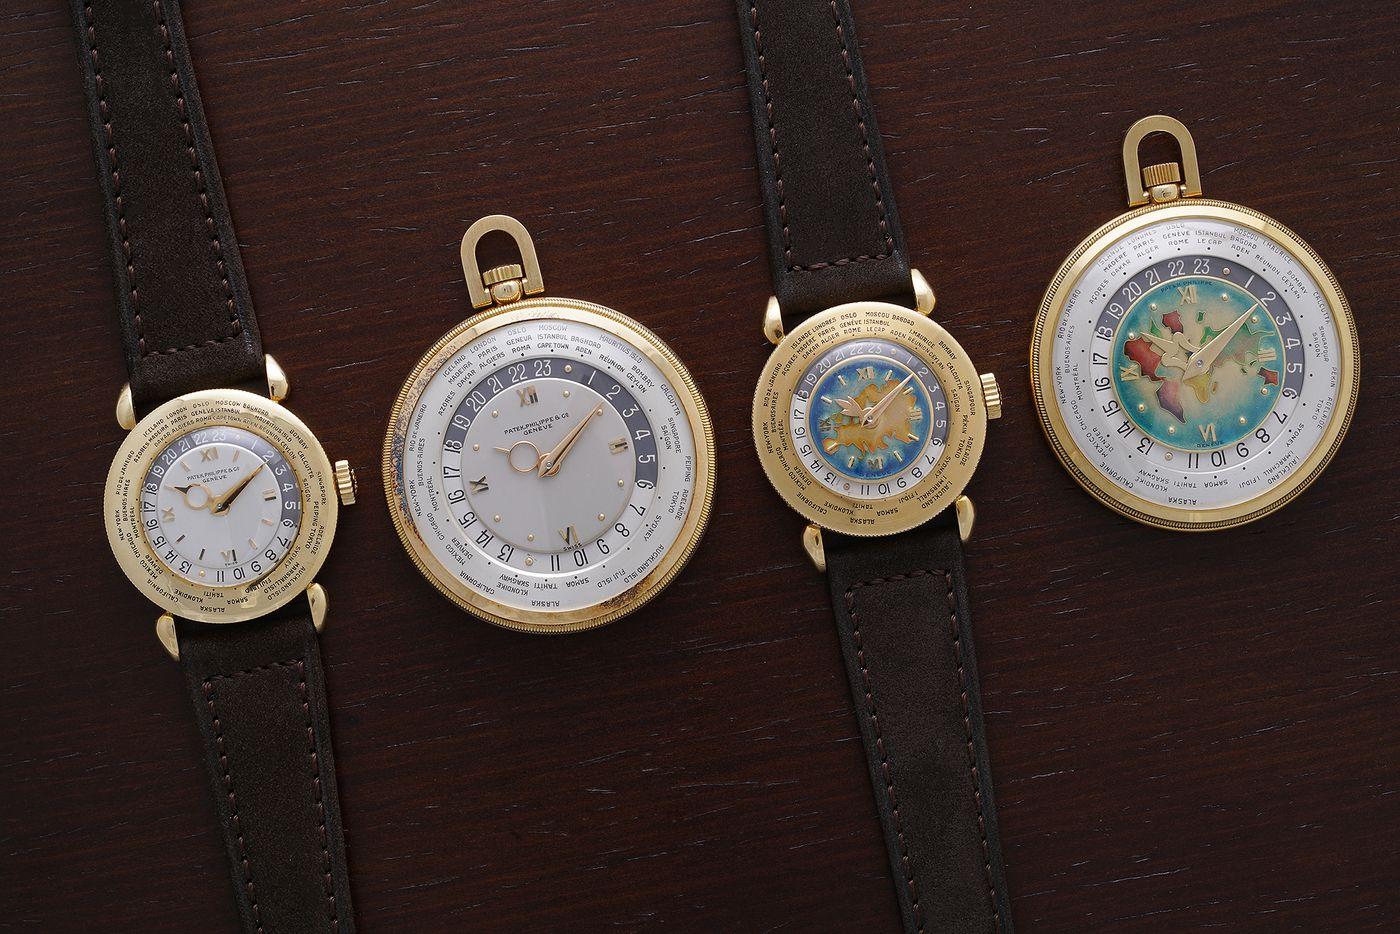 Patek Phillippe wrist watches and pocket watches In Four Patents that Changed the Face of Watchmaking for A Collected Man London